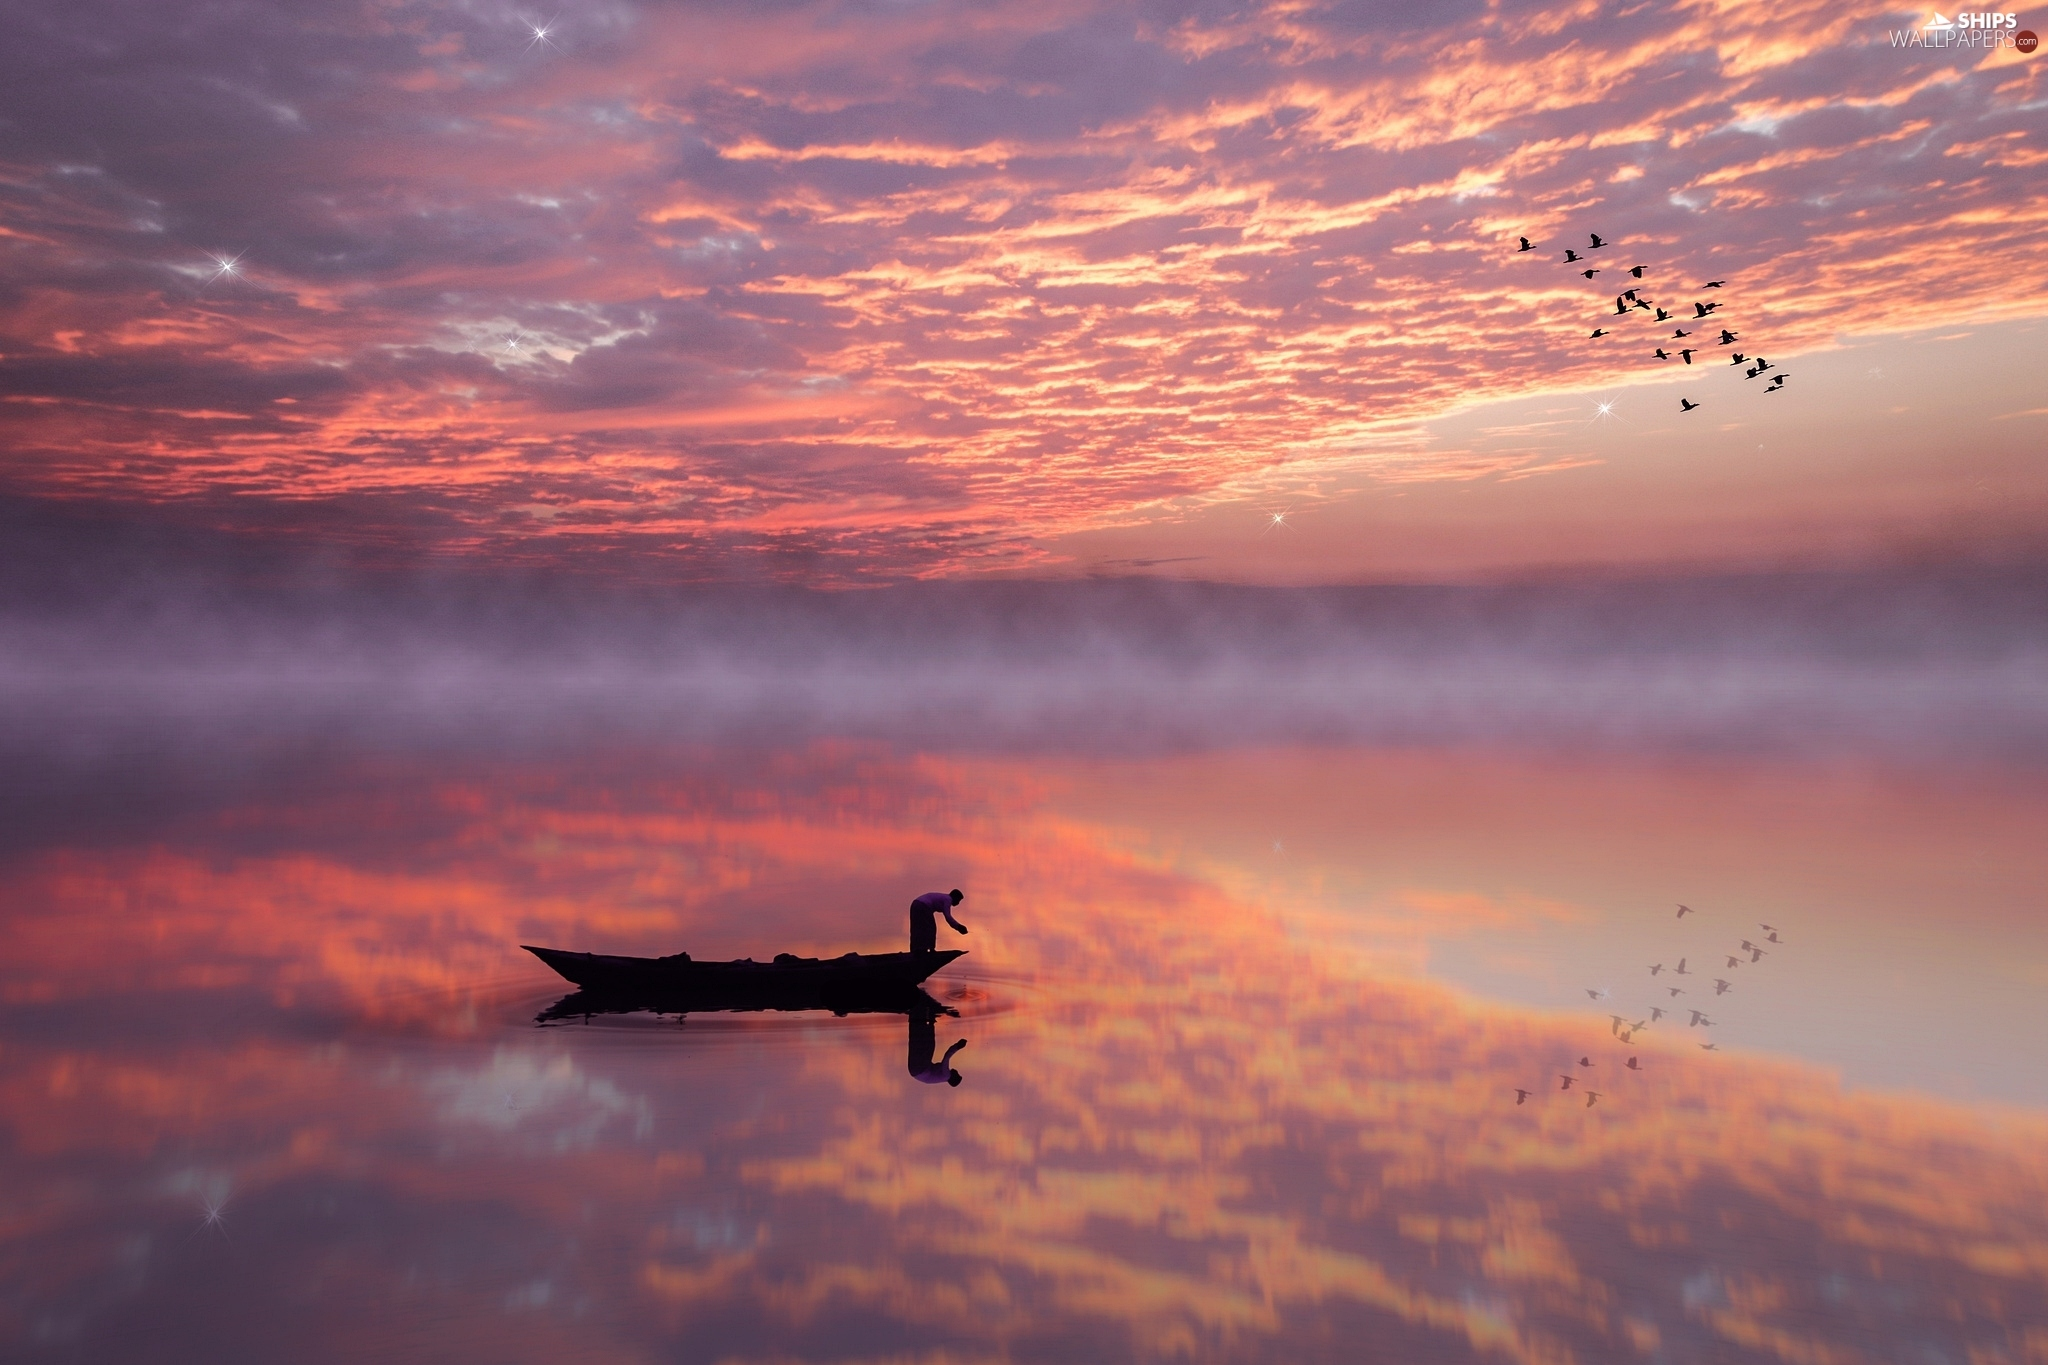 reflection, Great Sunsets, Fog, clouds, lake, Boat, birds